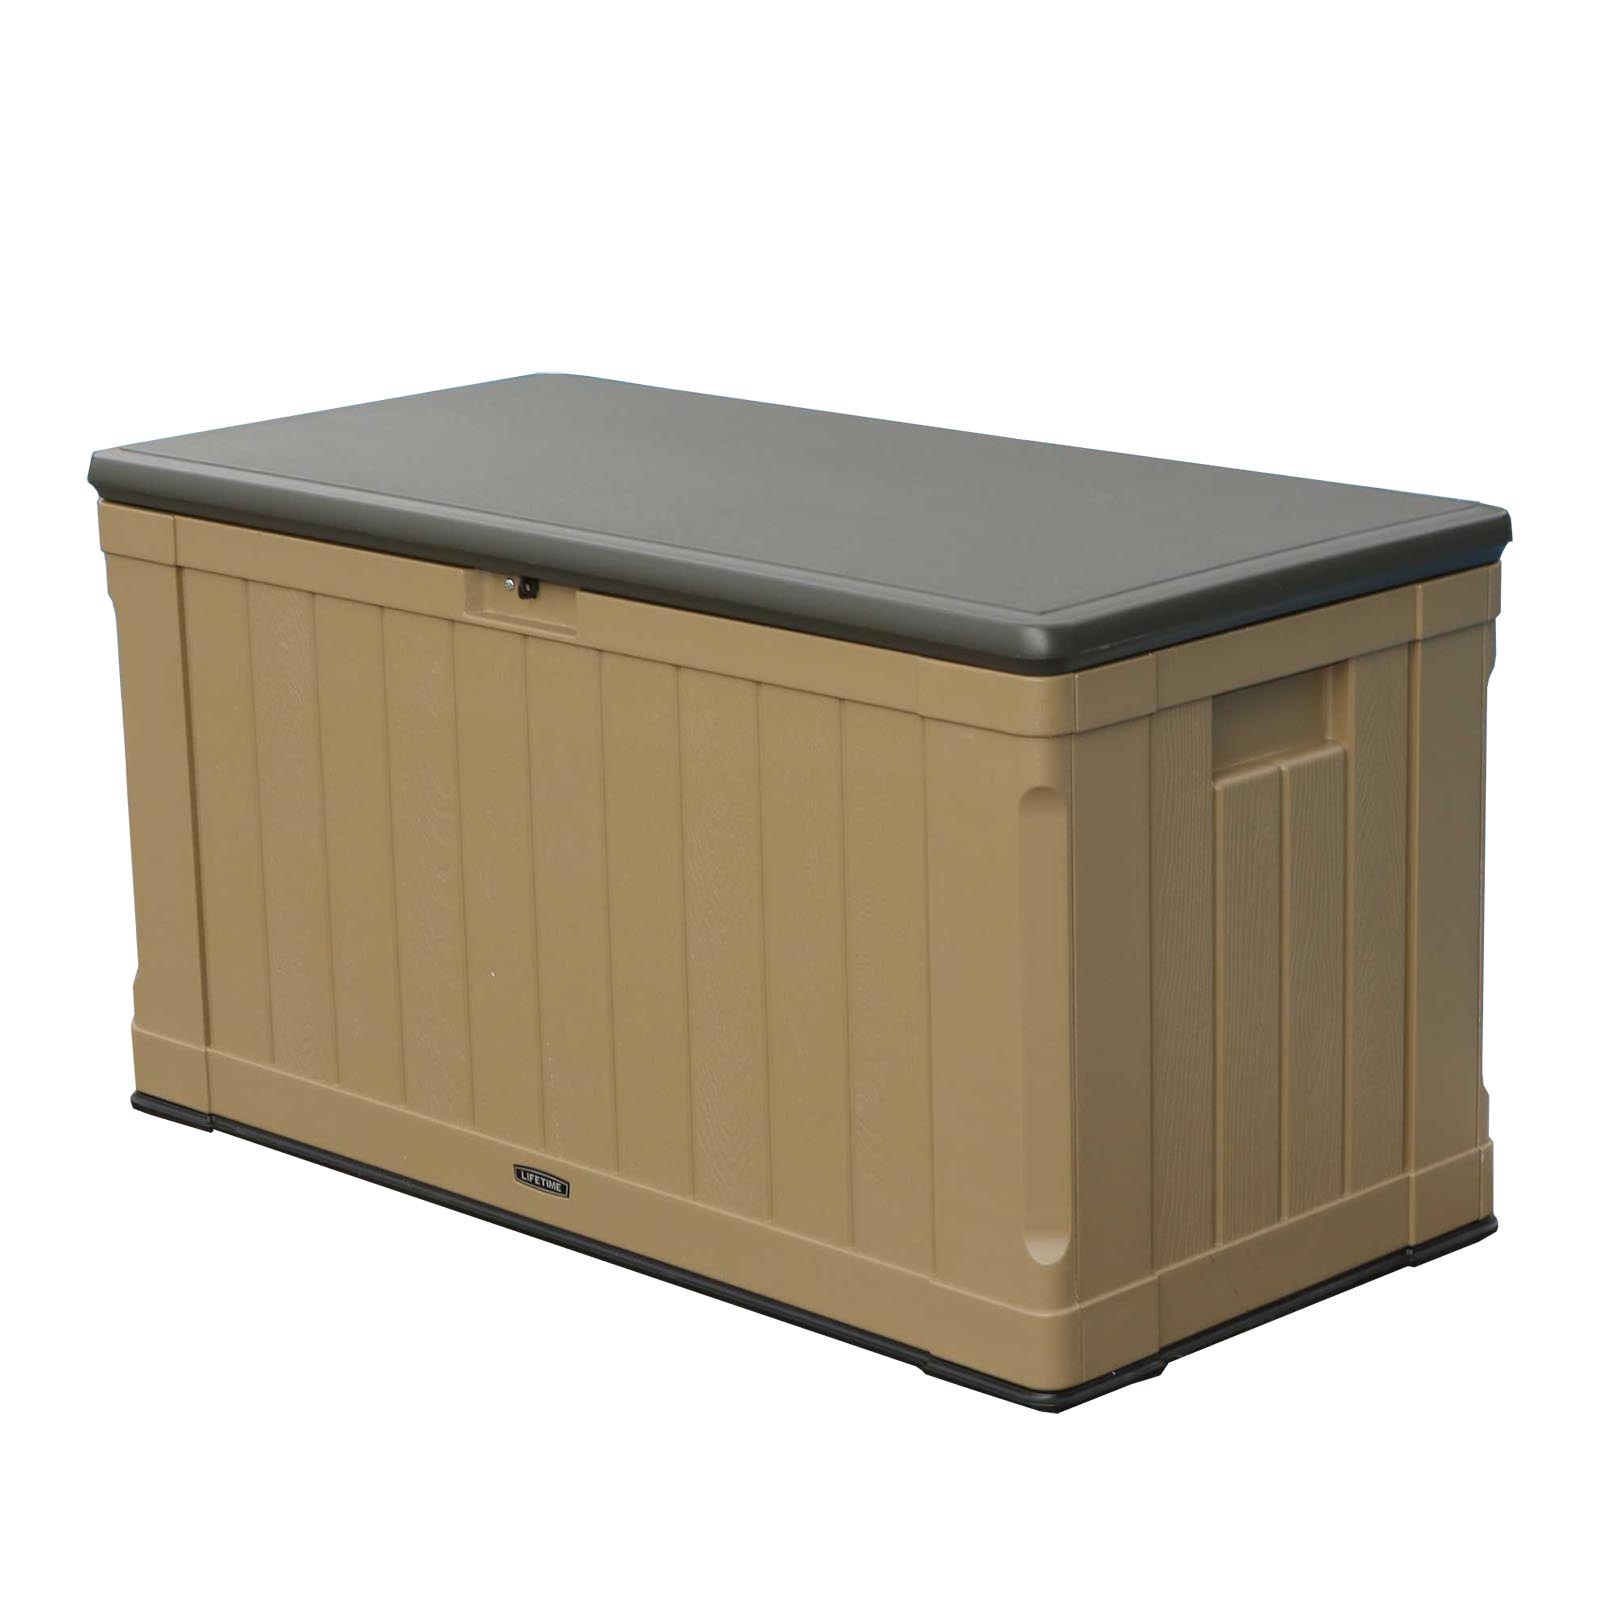 Lifetime 116 Gallon Outdoor Organizer Storage Pool & Patio Deck Box Bench, Beige by Lifetime